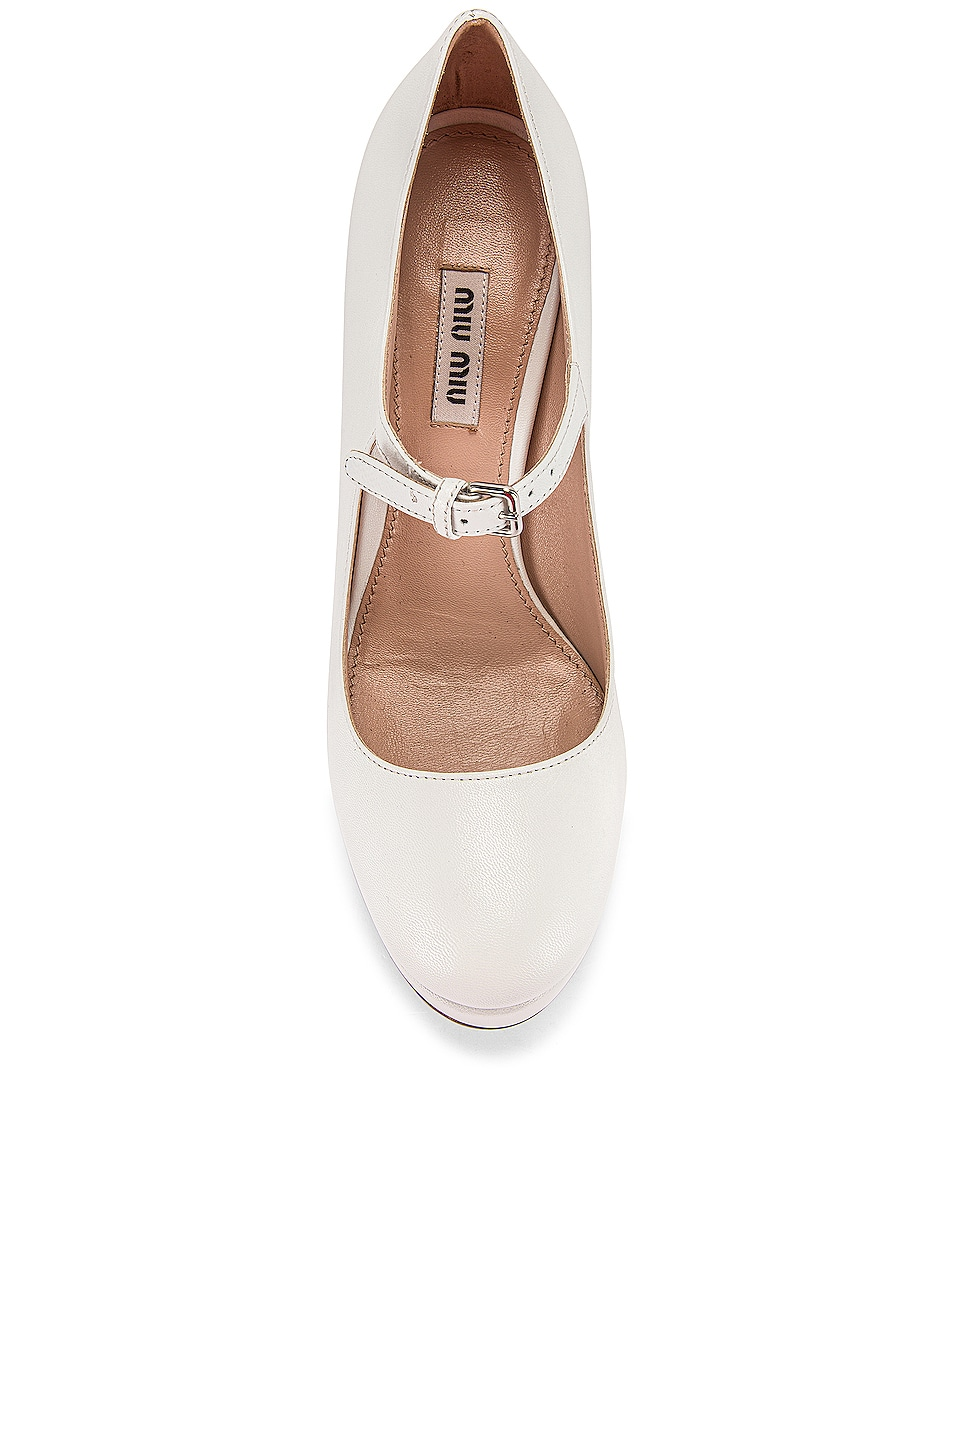 Image 4 of Miu Miu Plain Mary Jane Platform Heels in White